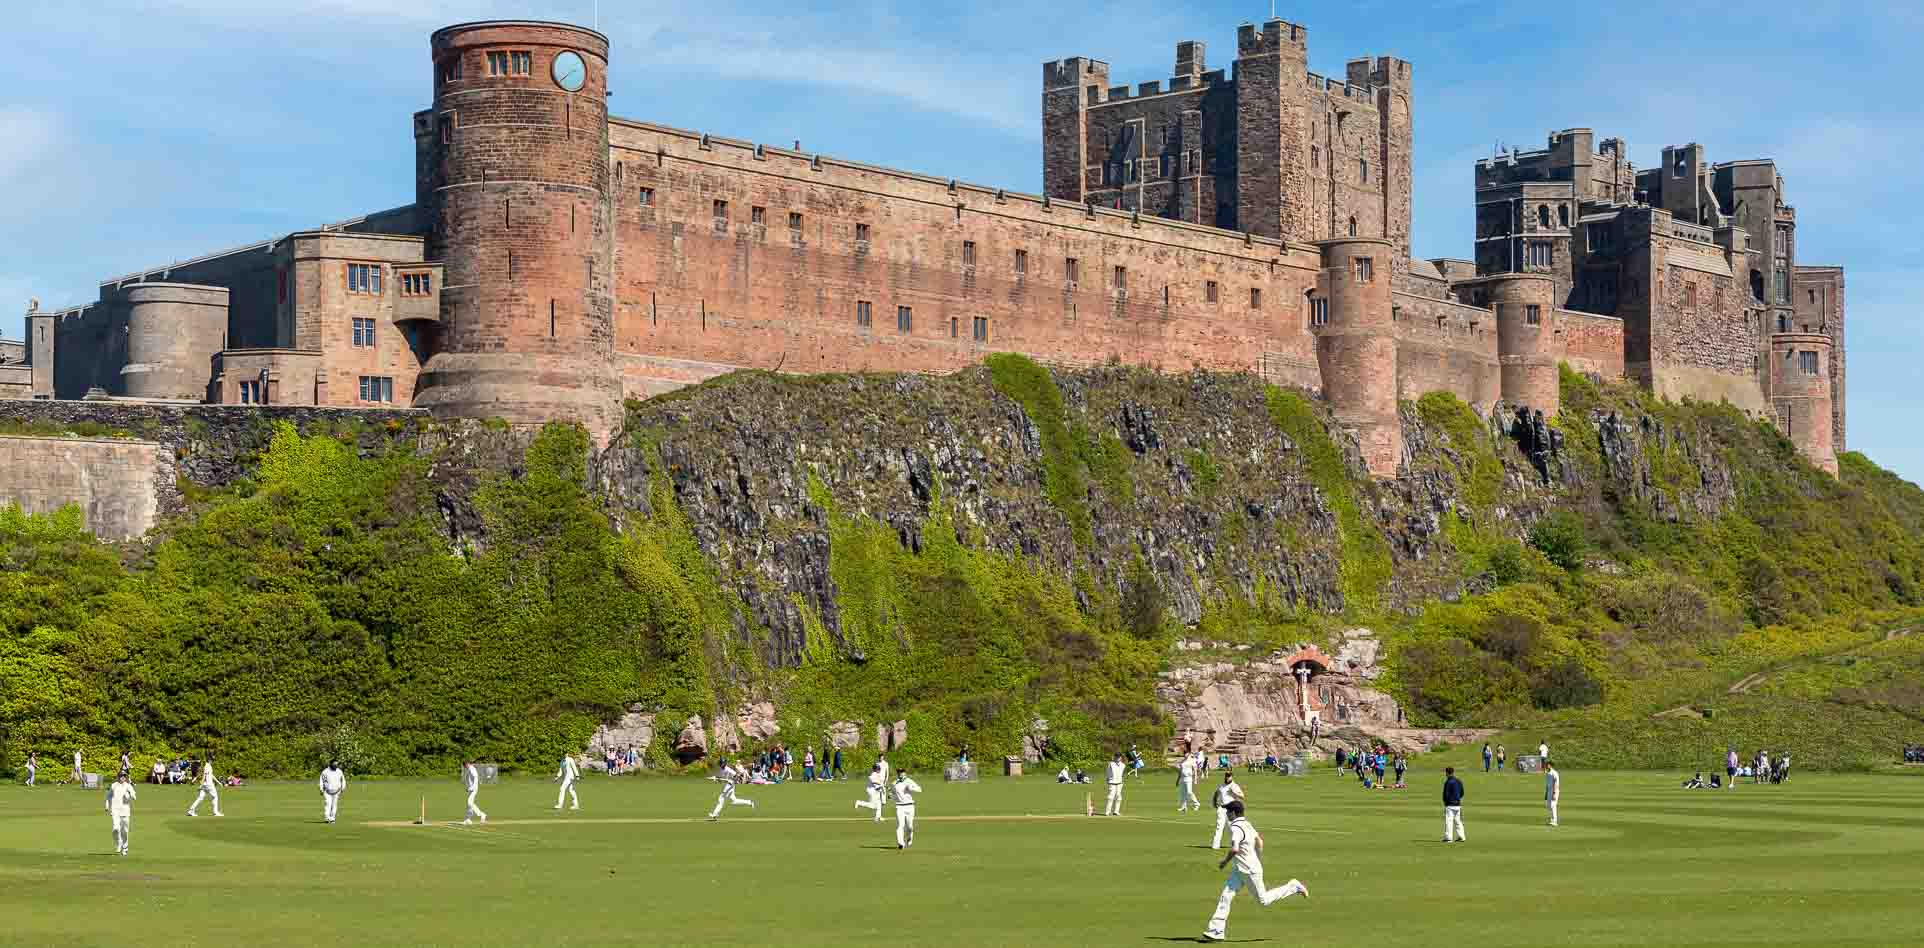 Quintessential English cricket scene, Bamburgh v Ponteland on Bamburgh Cricket pitch in the shadow of Bamburgh Castle.